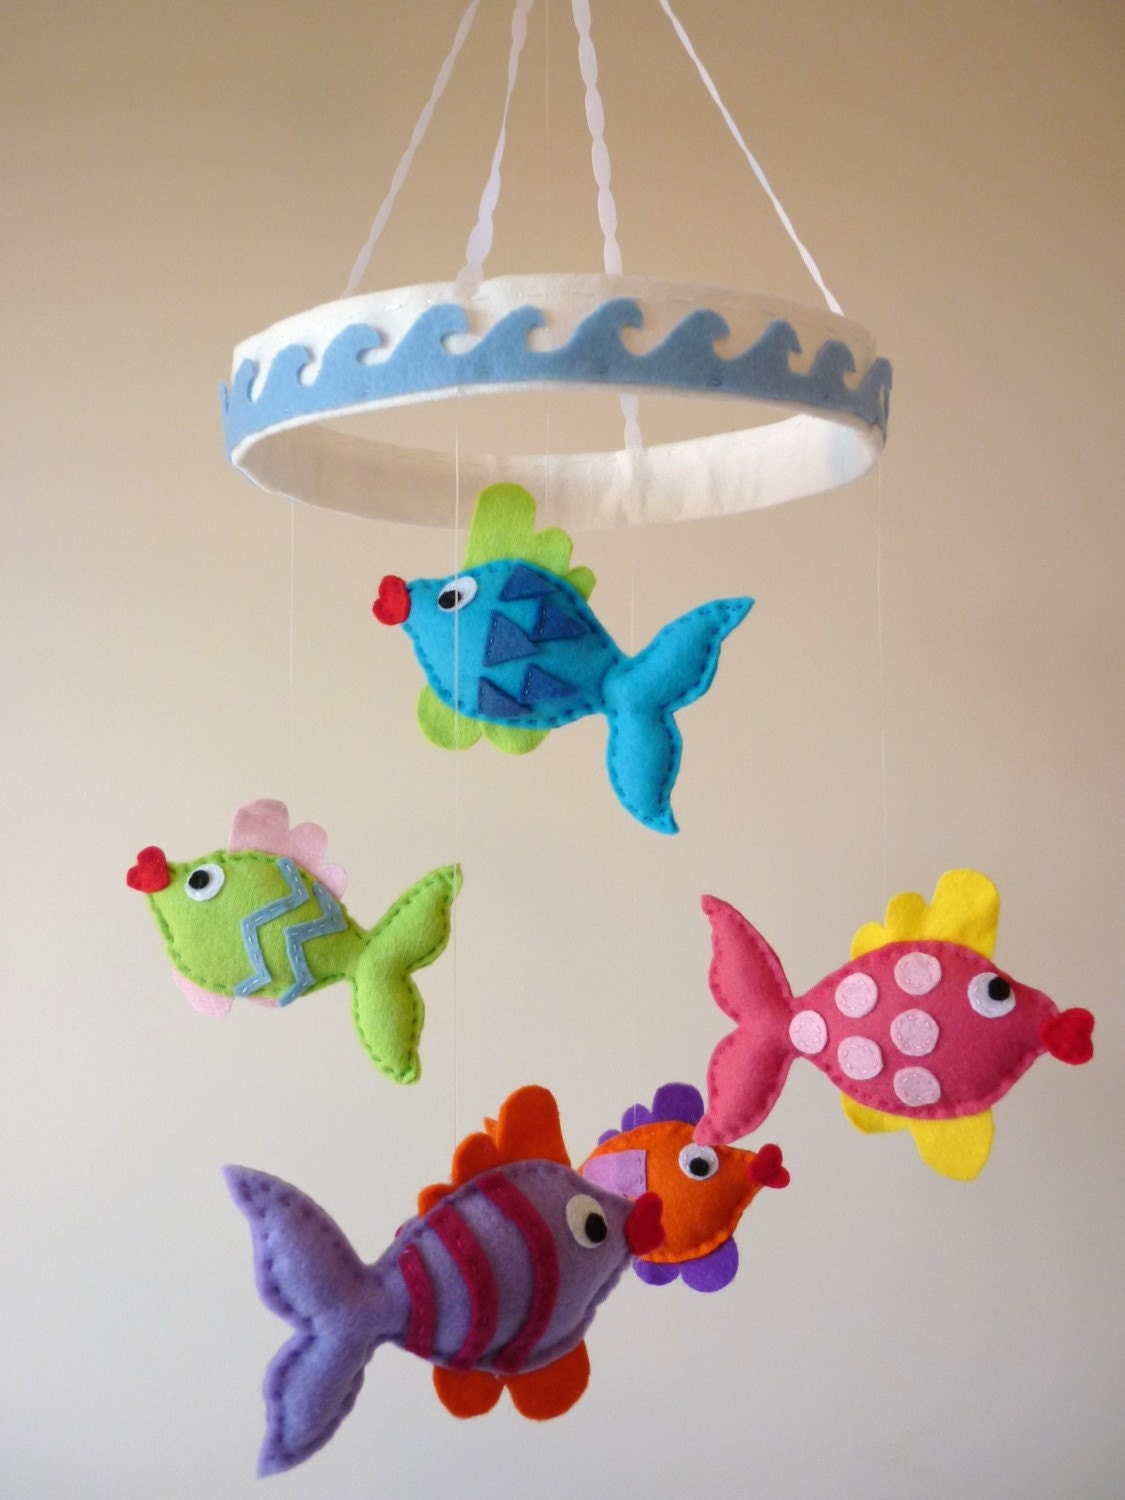 Rainbow Kissing Fish Baby Mobile